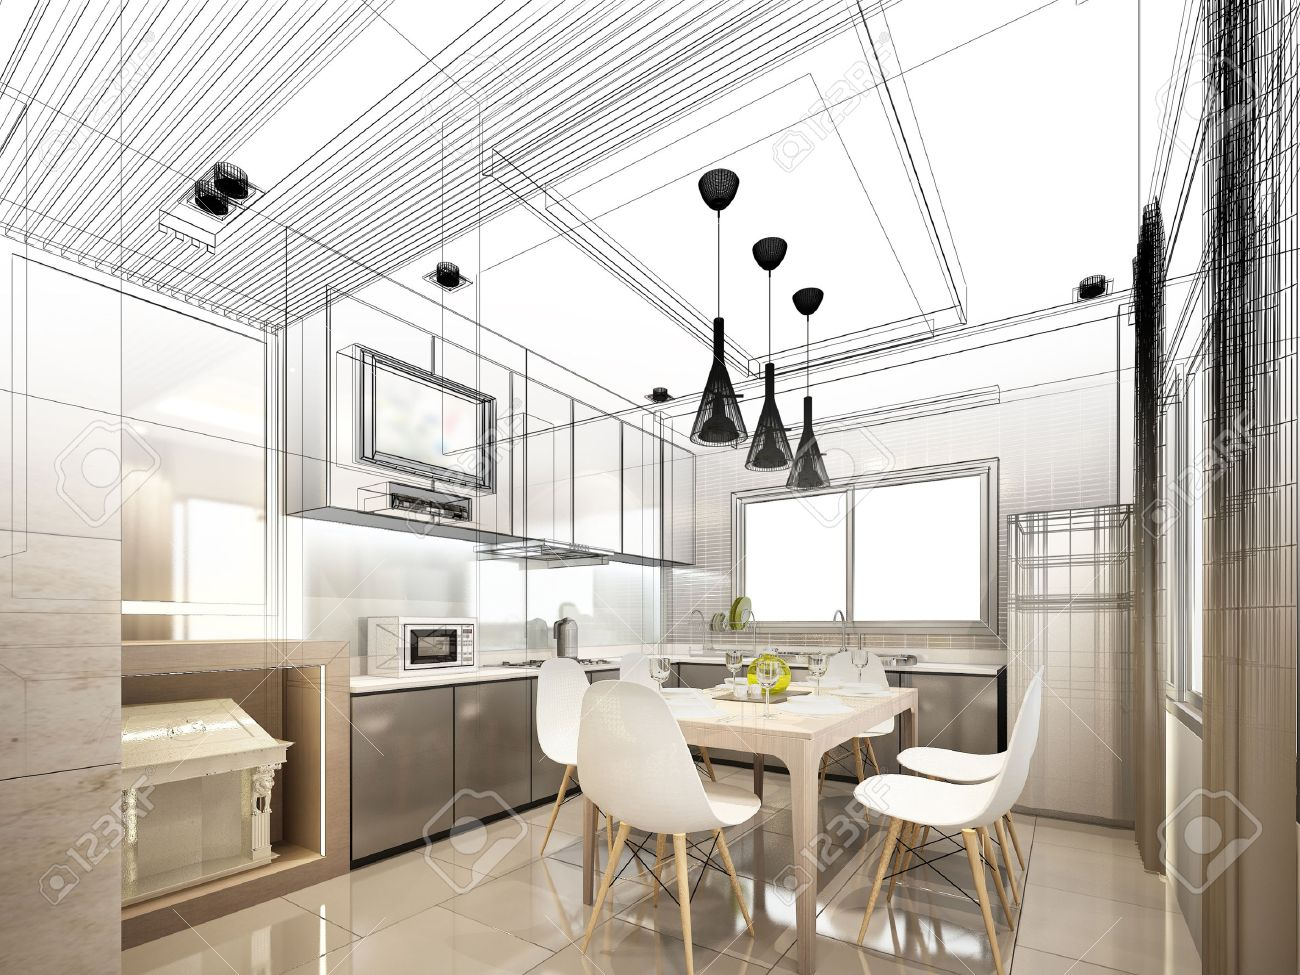 abstract sketch design of interior kitchen stock photo, picture